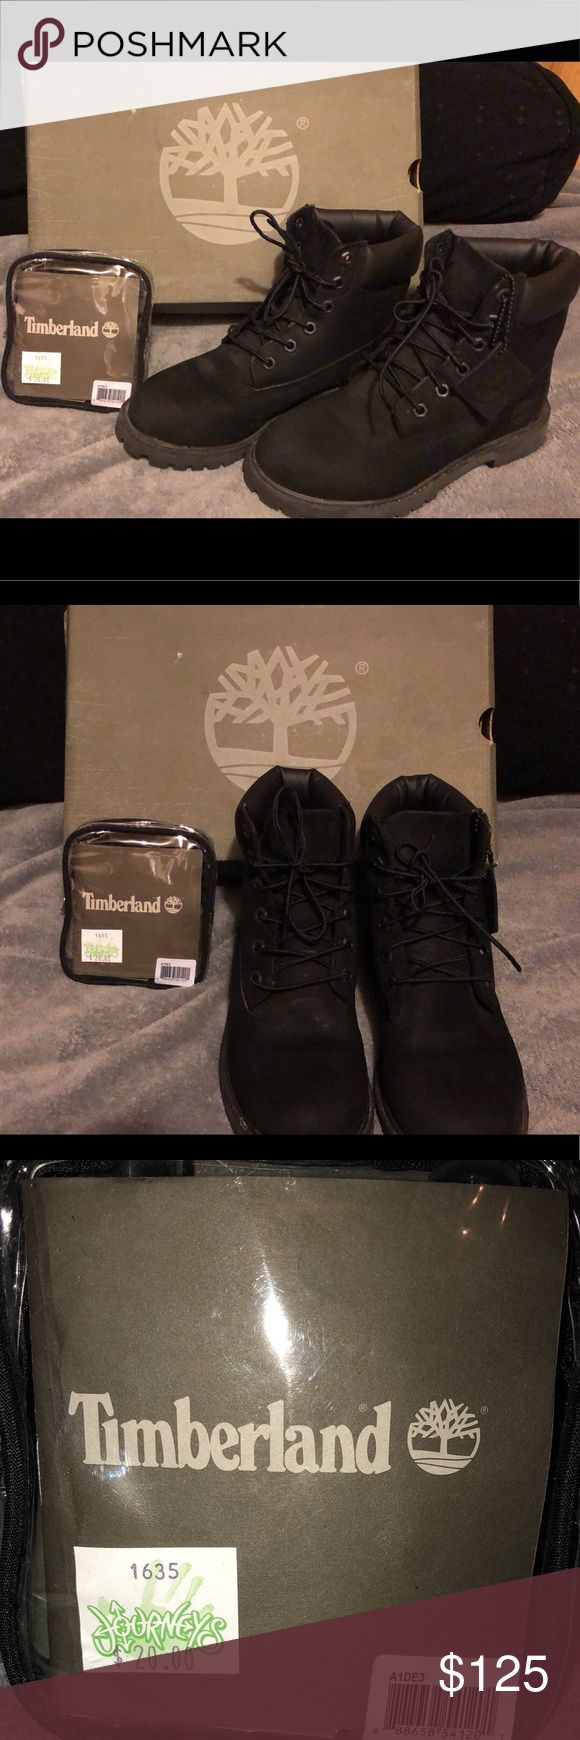 Black Timberland Boots Brand new black timbs. Worn twice and in good condition. Includes cleaning kit. Purchased for $180, asking $125 obo. Size 4 junior, which fits a 5.5-6 in women, as that is my shoe size. Timberland Shoes Combat & Moto Boots